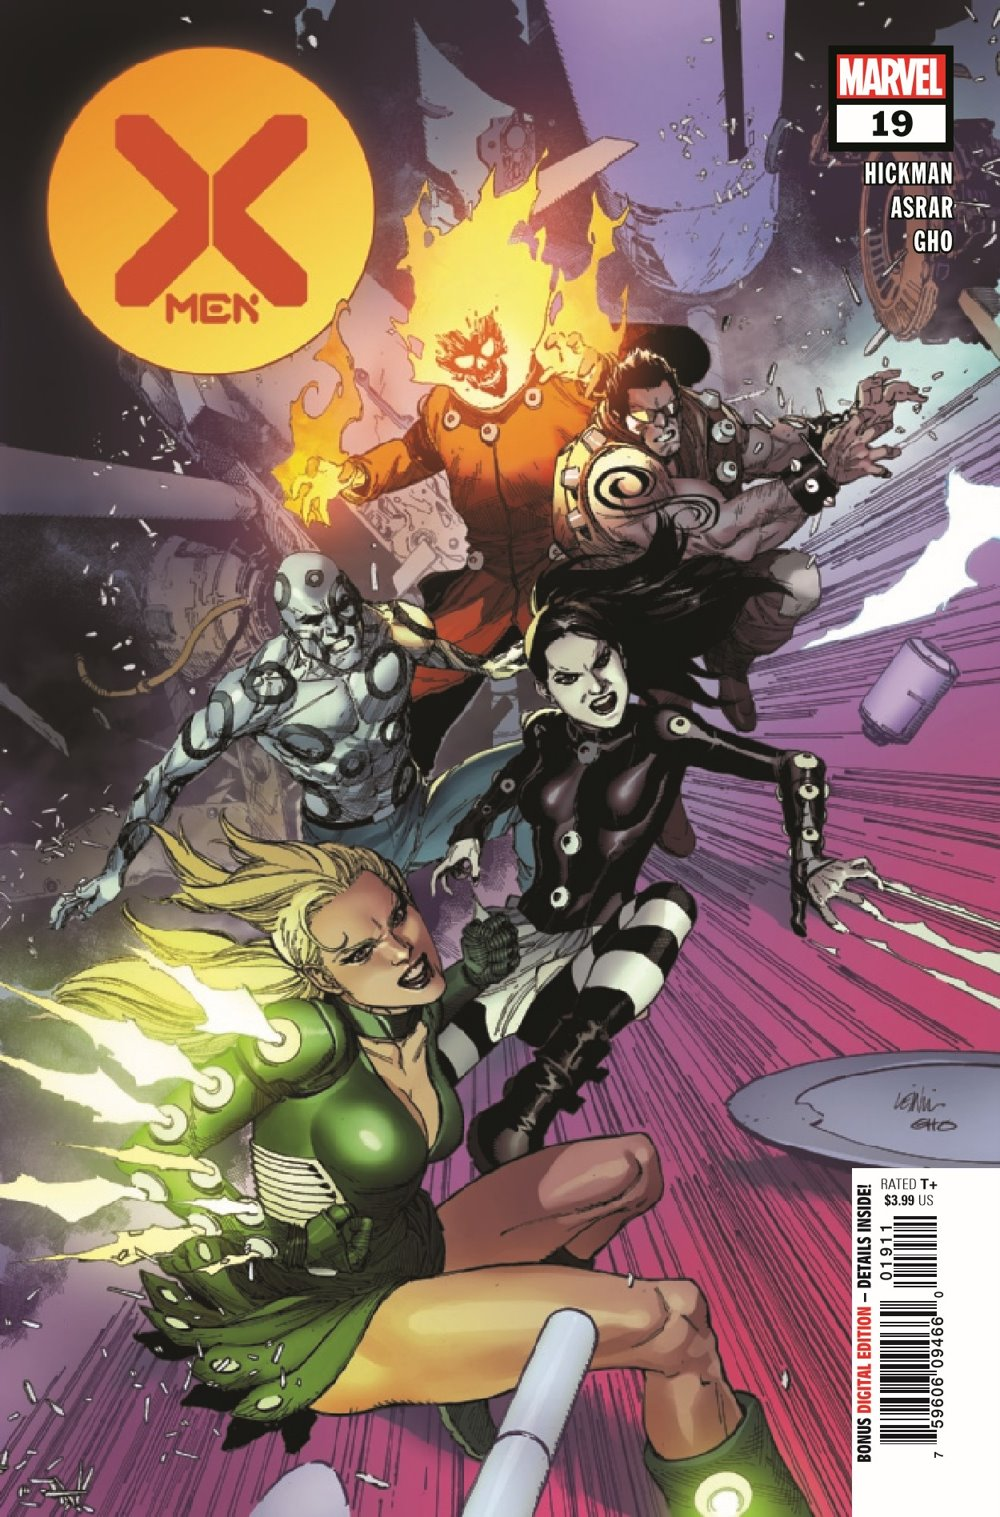 XMEN2019019_Preview-1 ComicList Previews: X-MEN #19